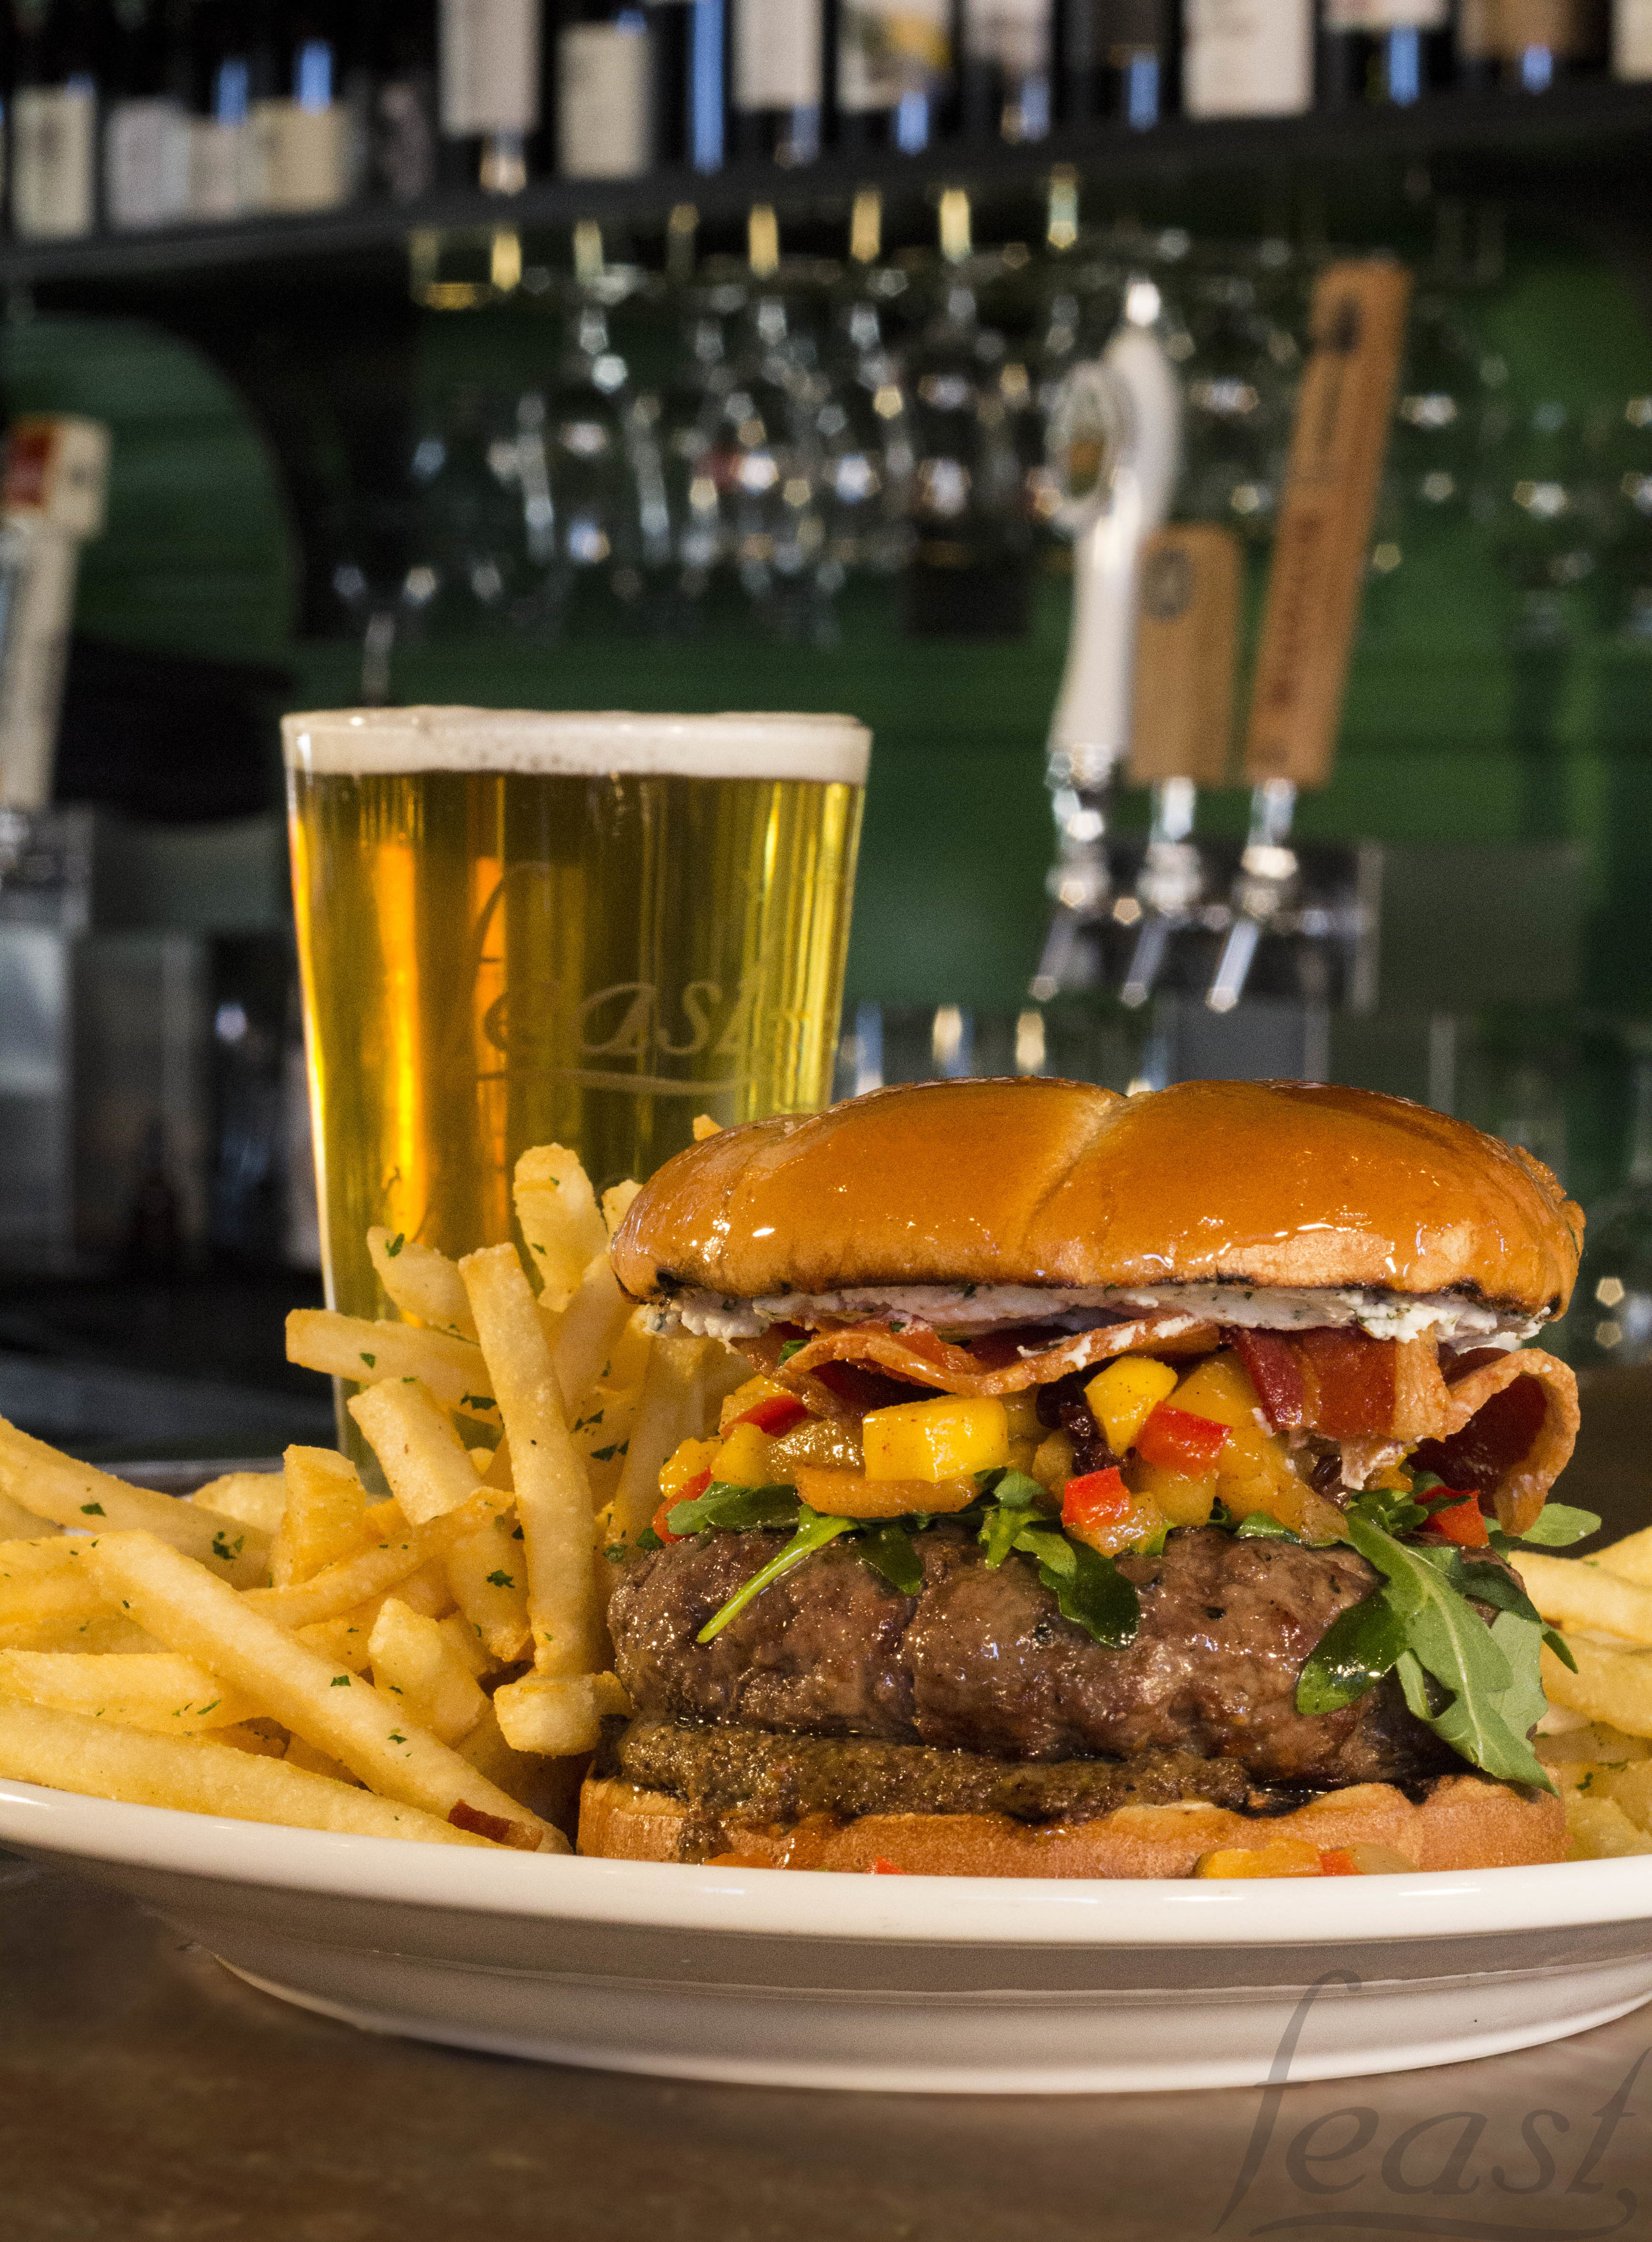 Beer and a Burger